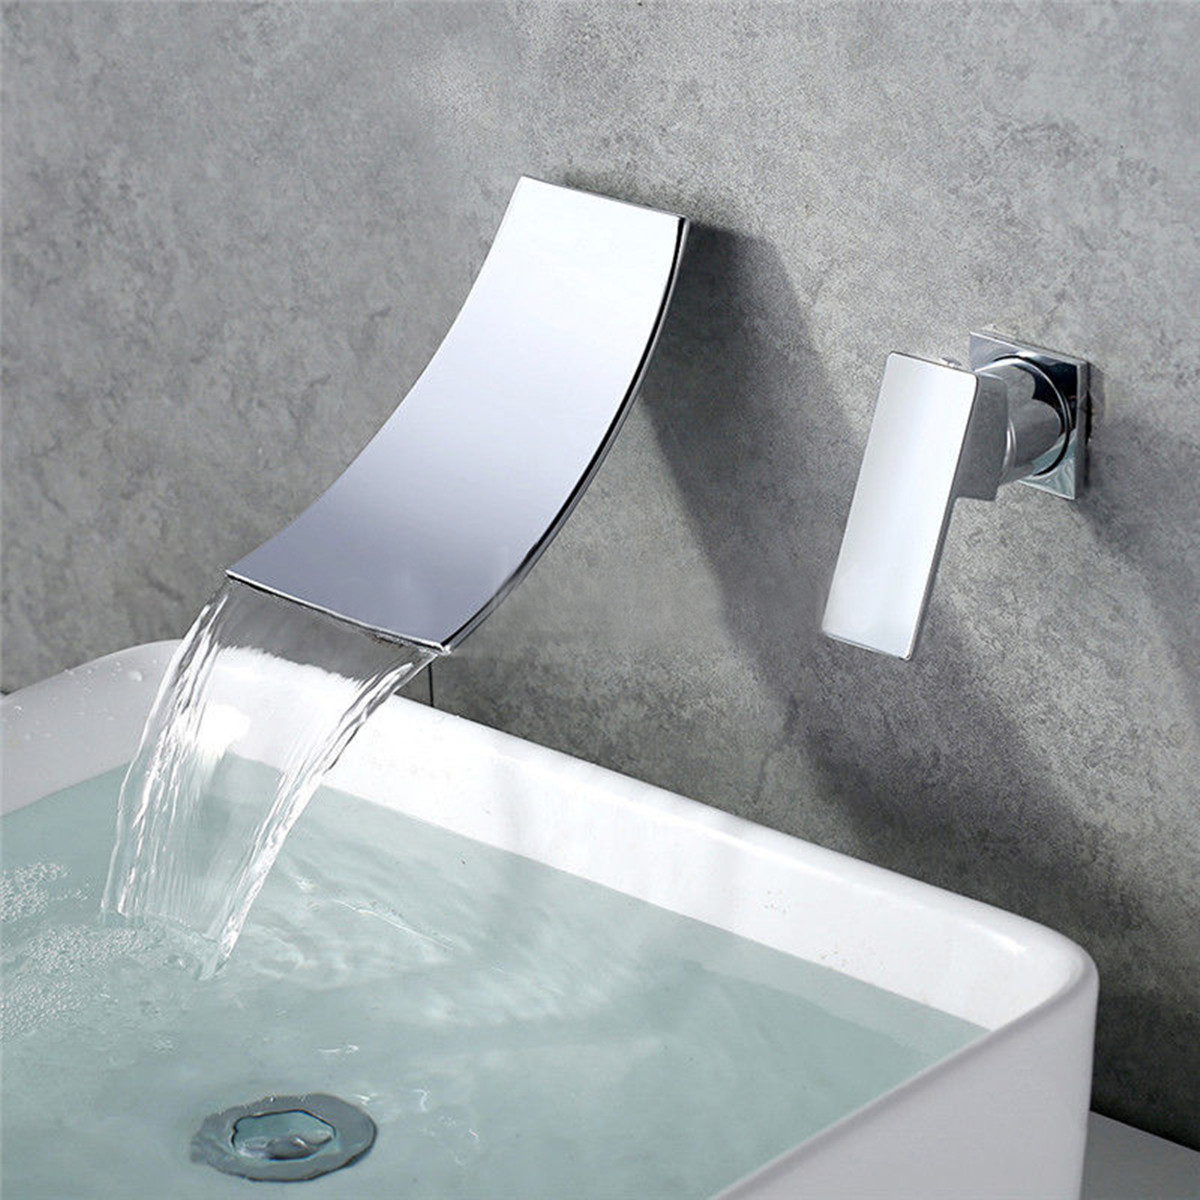 Wall Mounted Faucet Chrome Kitchen Bathroom Basin Waterfall Hot/Cold ...